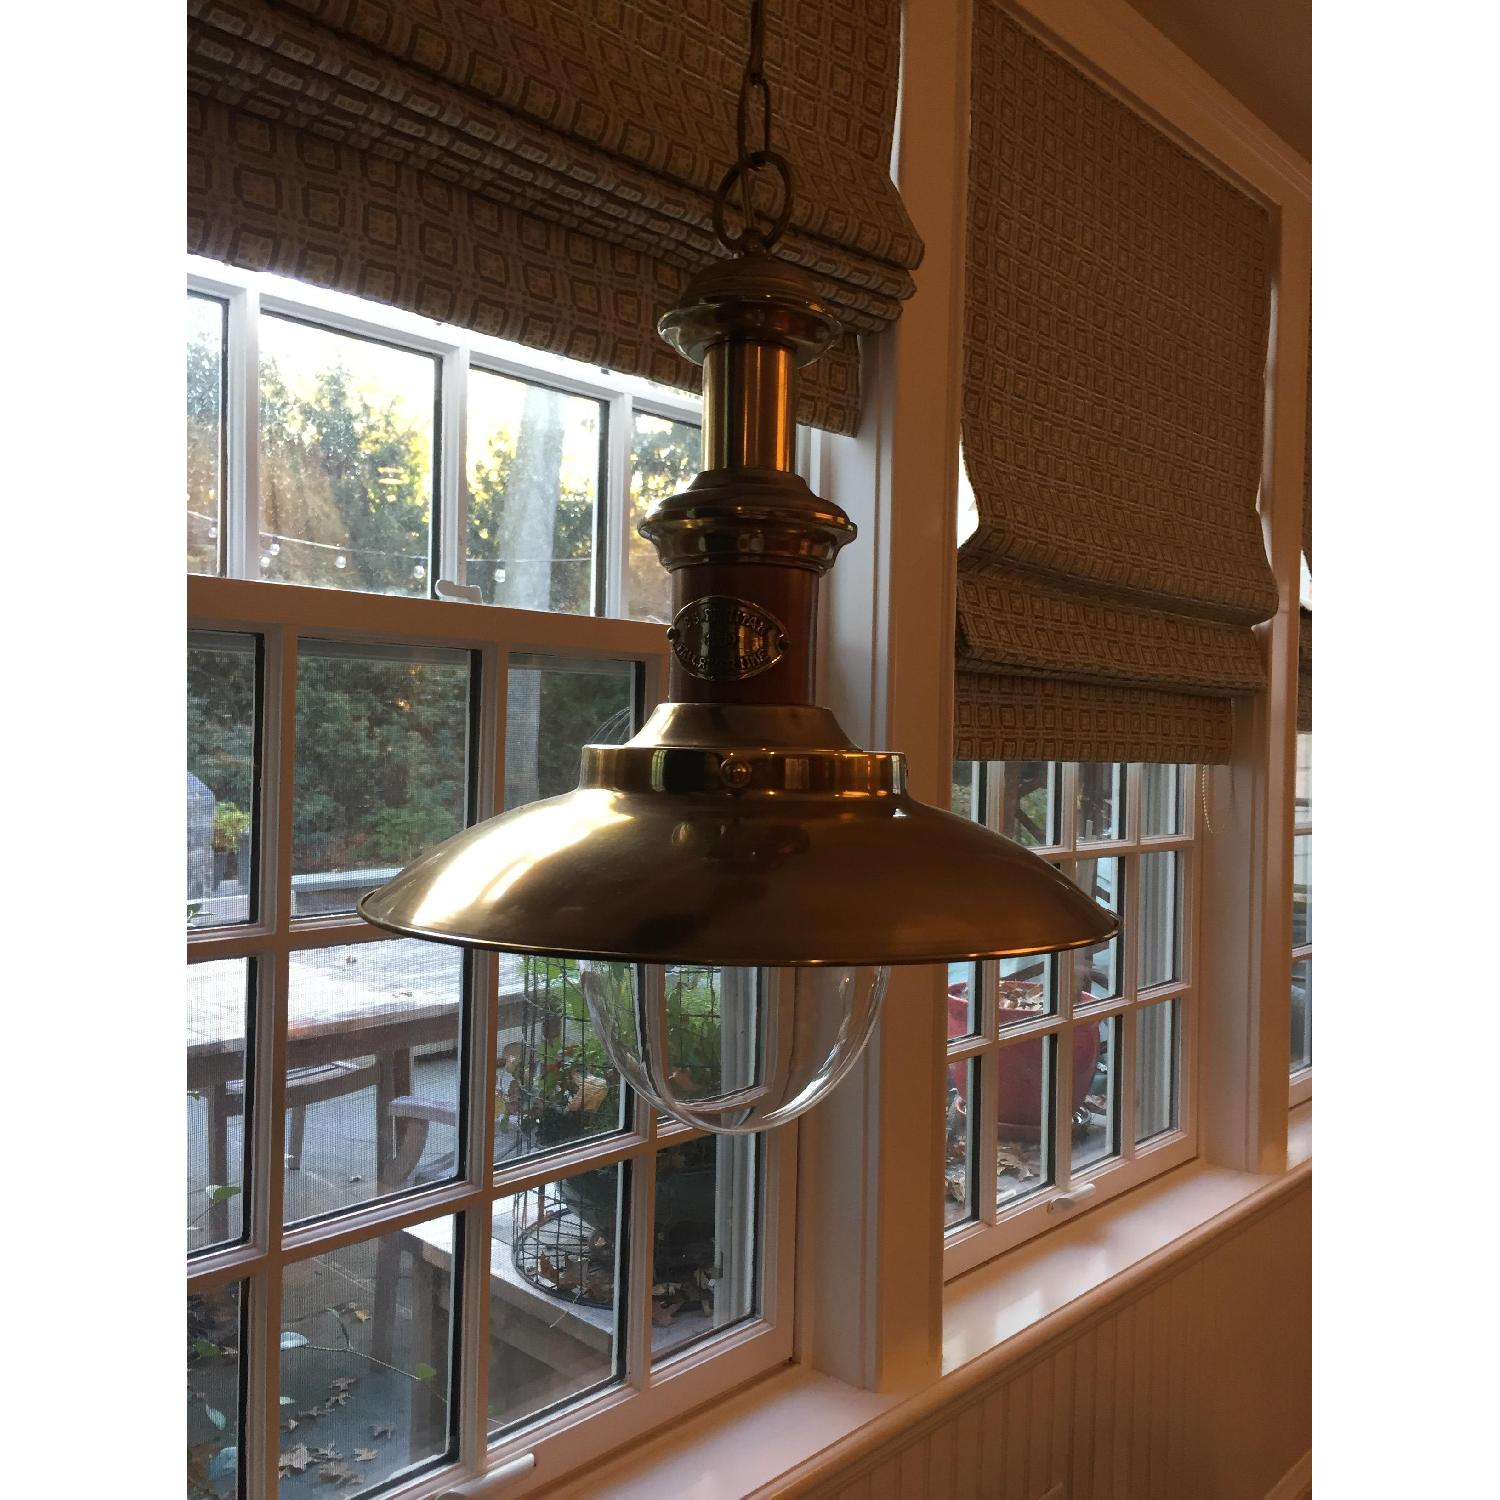 Fall River Lighting Industrial Chic Hanging Lamps-3